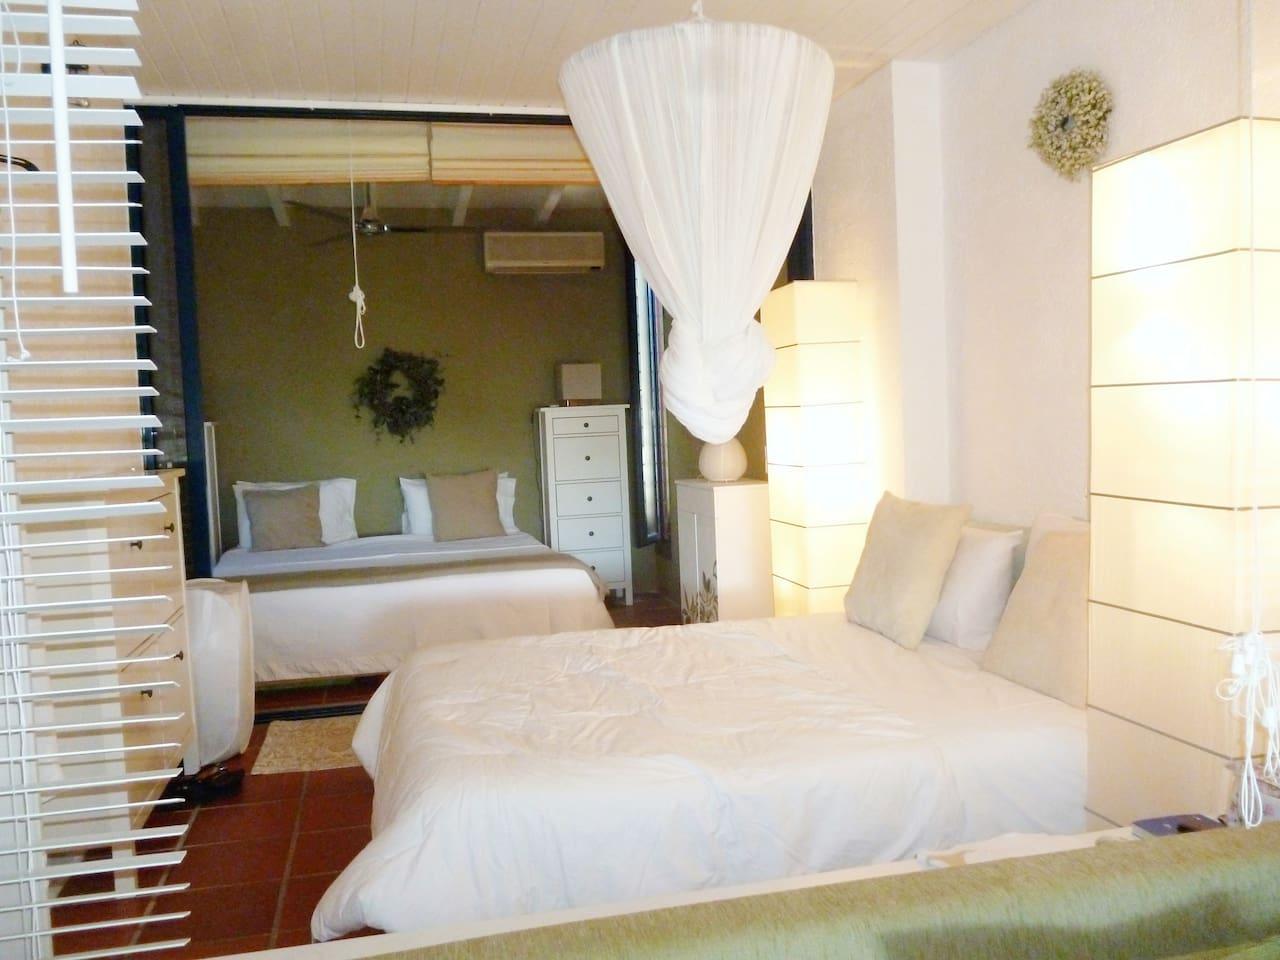 View of the bedrooms (seperated by sliding doors)